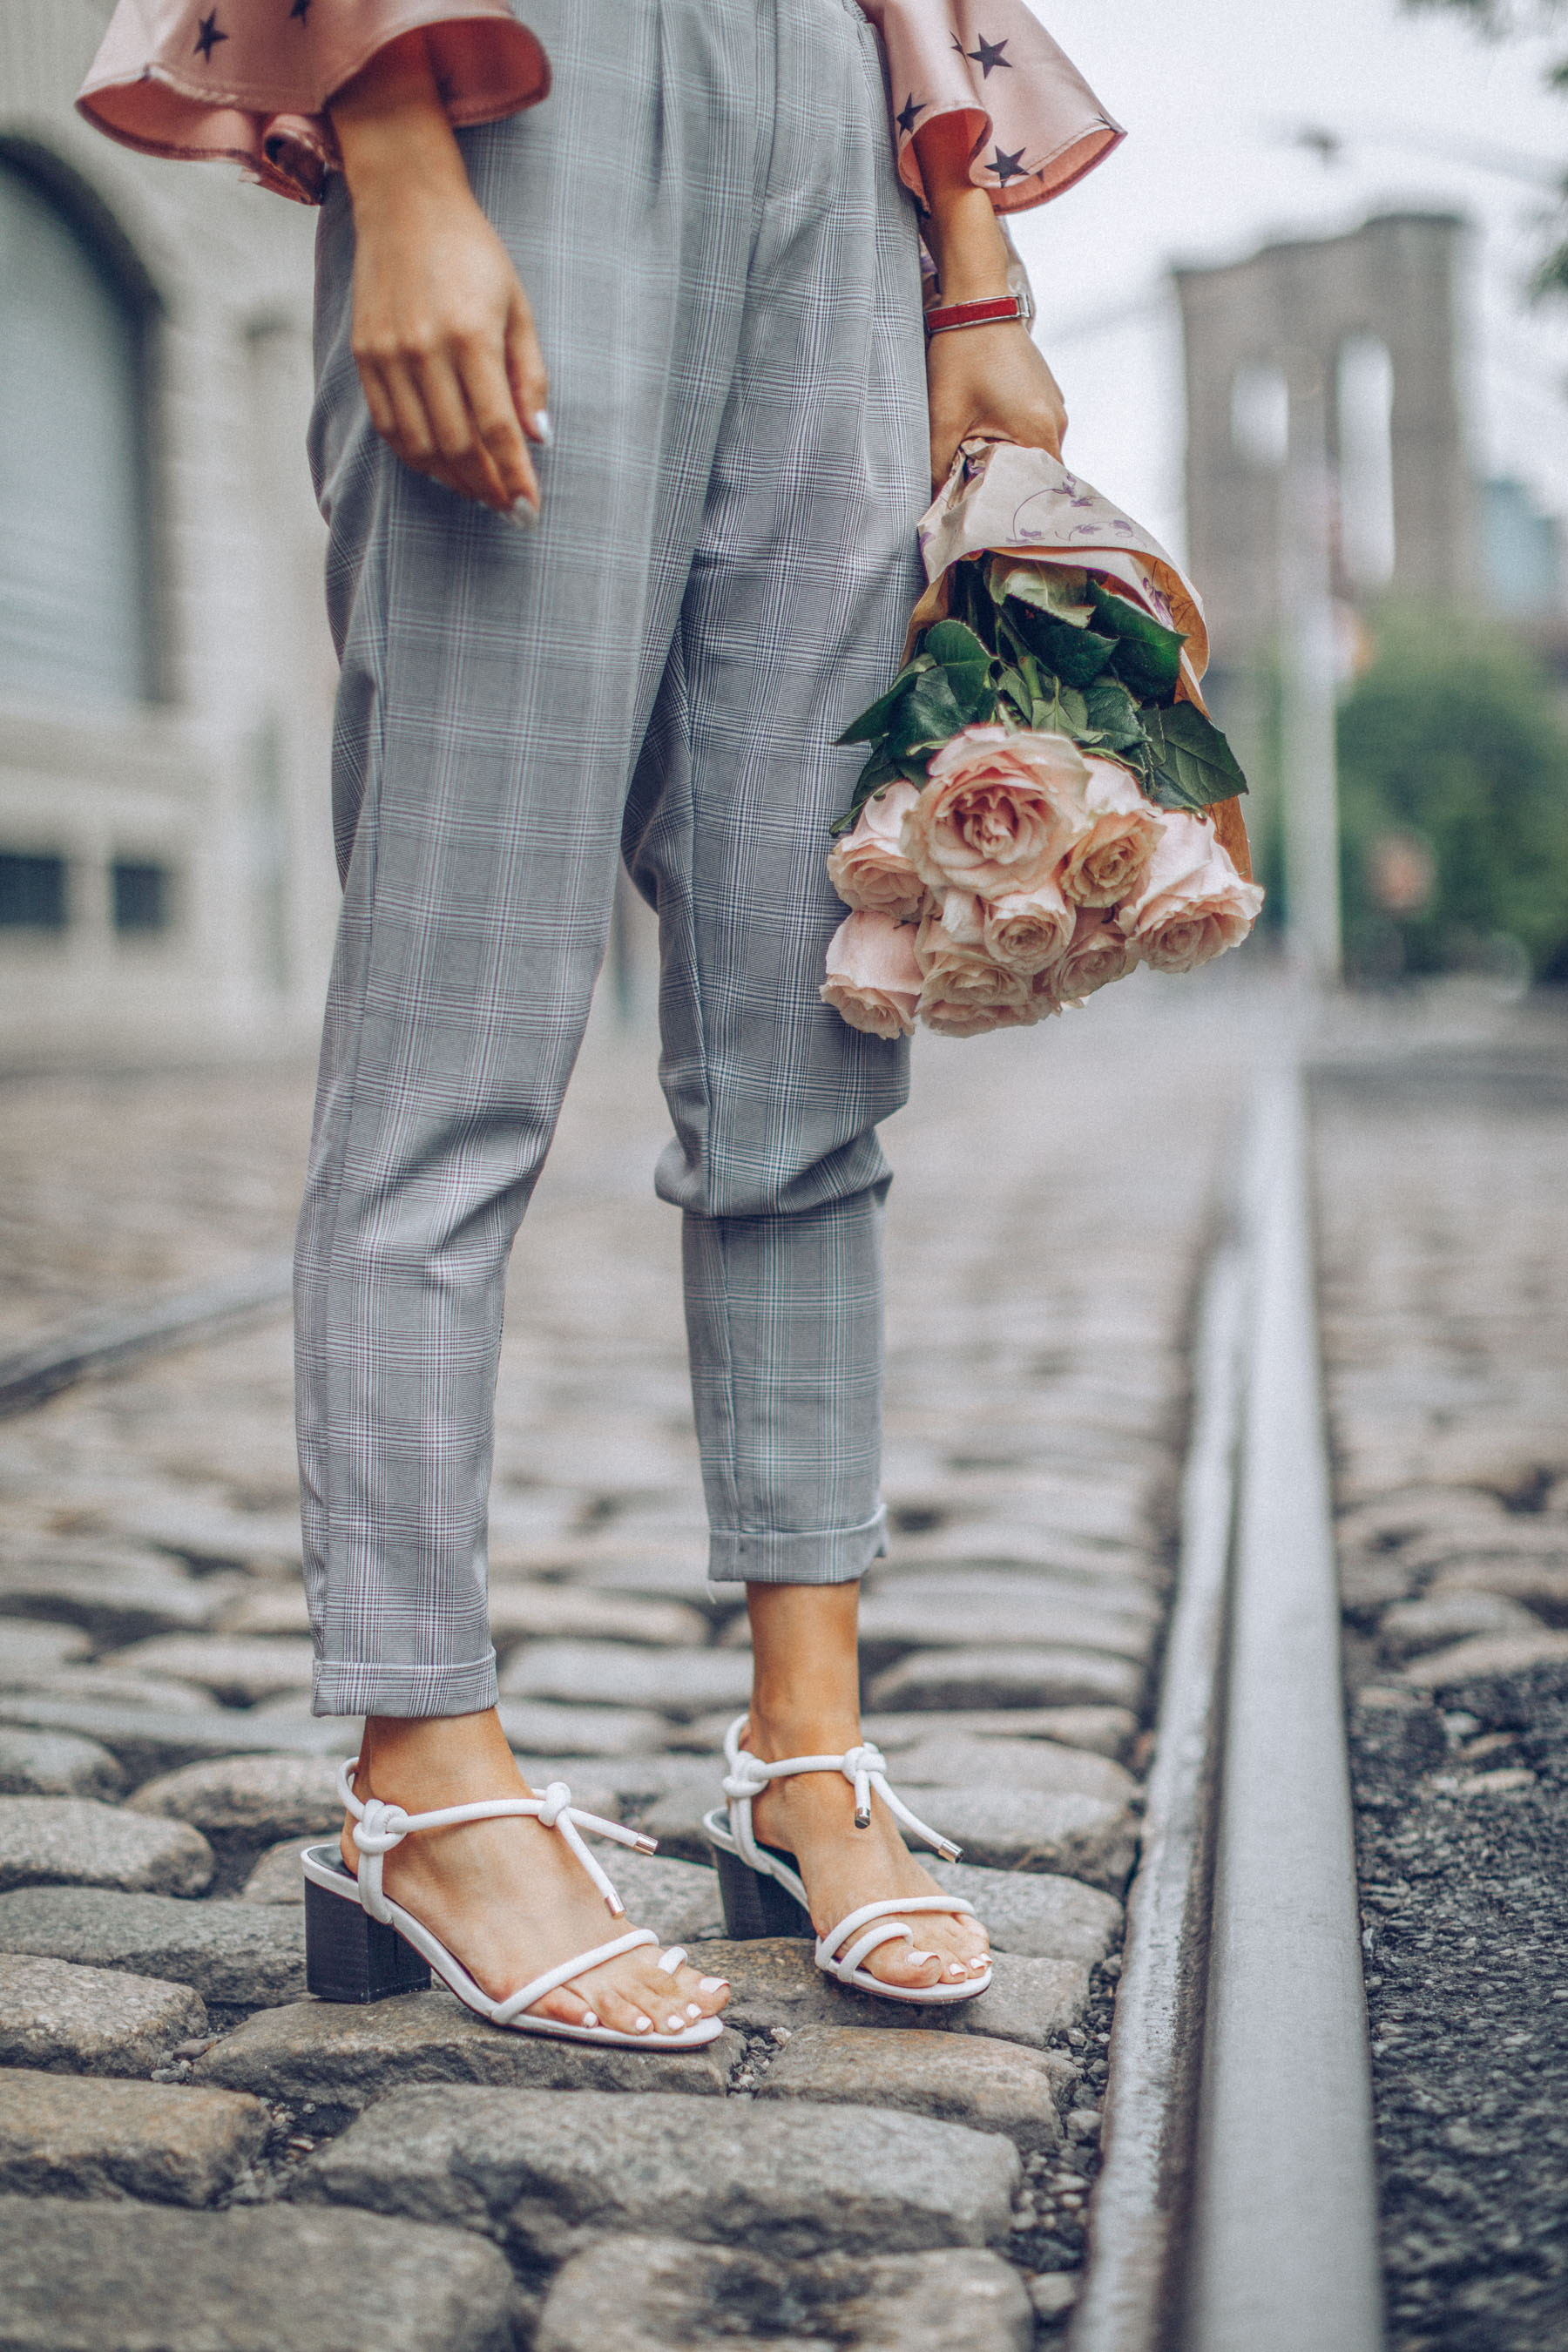 chunky sandals trend, shoe trends for summer 2019 // Notjessfashion.com